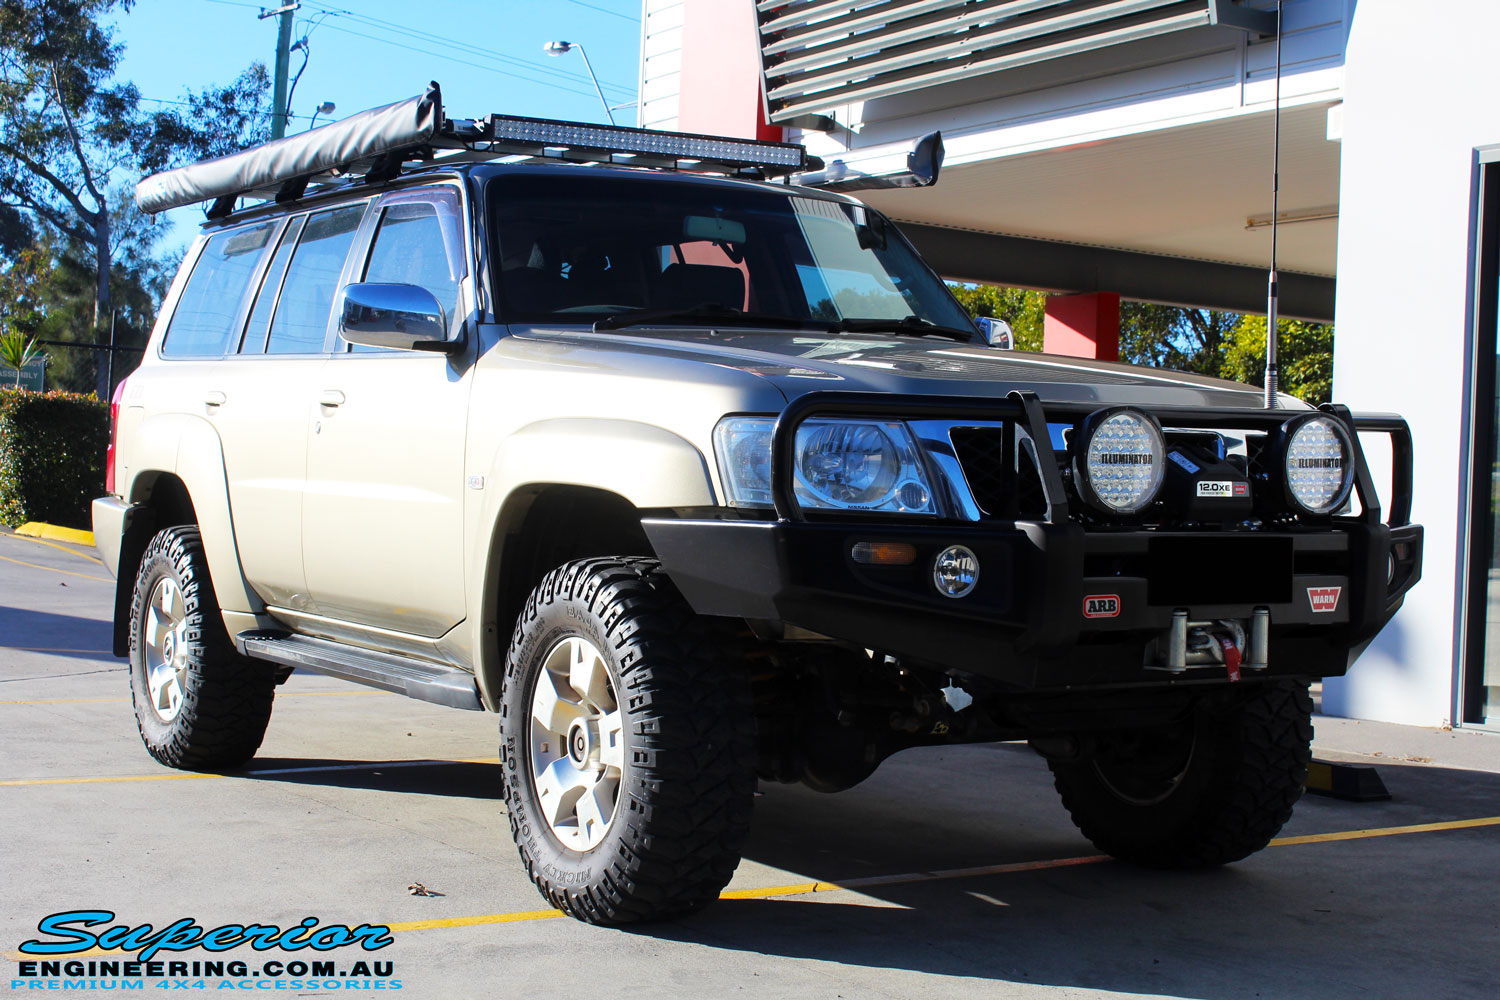 Right front side view of a Nissan GU Patrol Wagon in Gold On The Hoist @ Superior Engineering Deception Bay Showroom